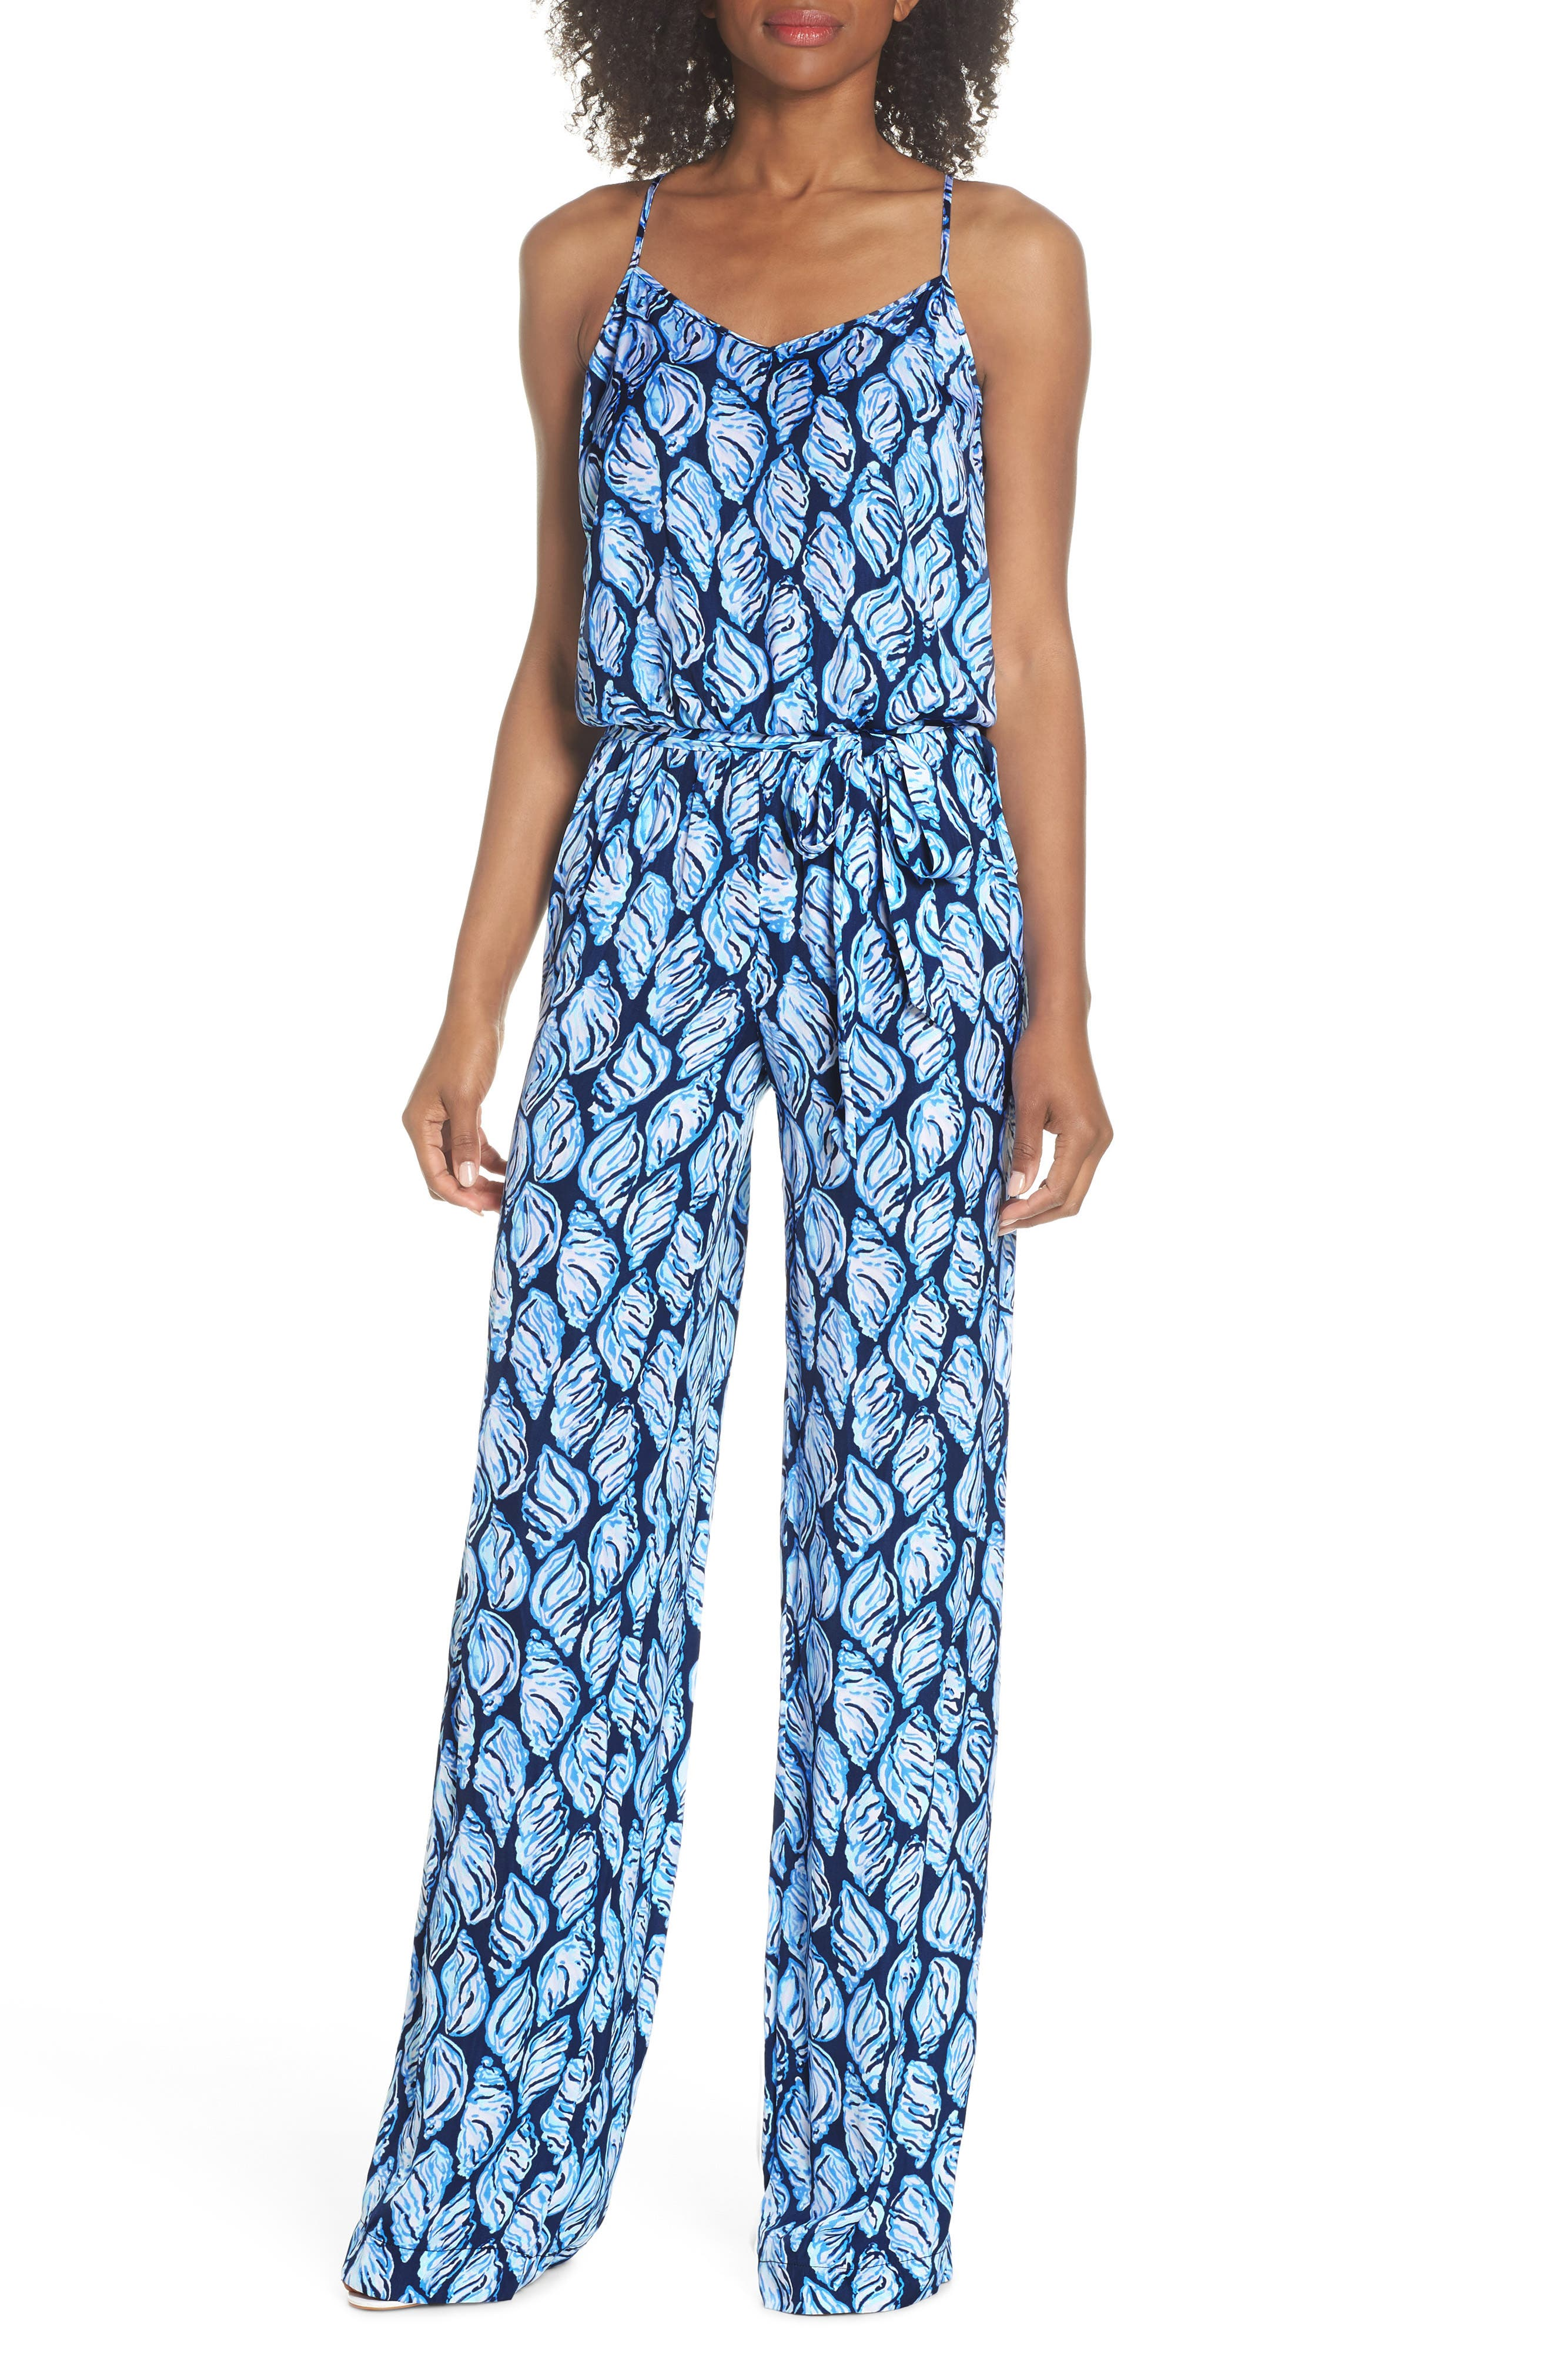 Lilly Pulizter<sup>®</sup> Dusk Sleeveless Jumpsuit,                         Main,                         color, High Tide Drop In